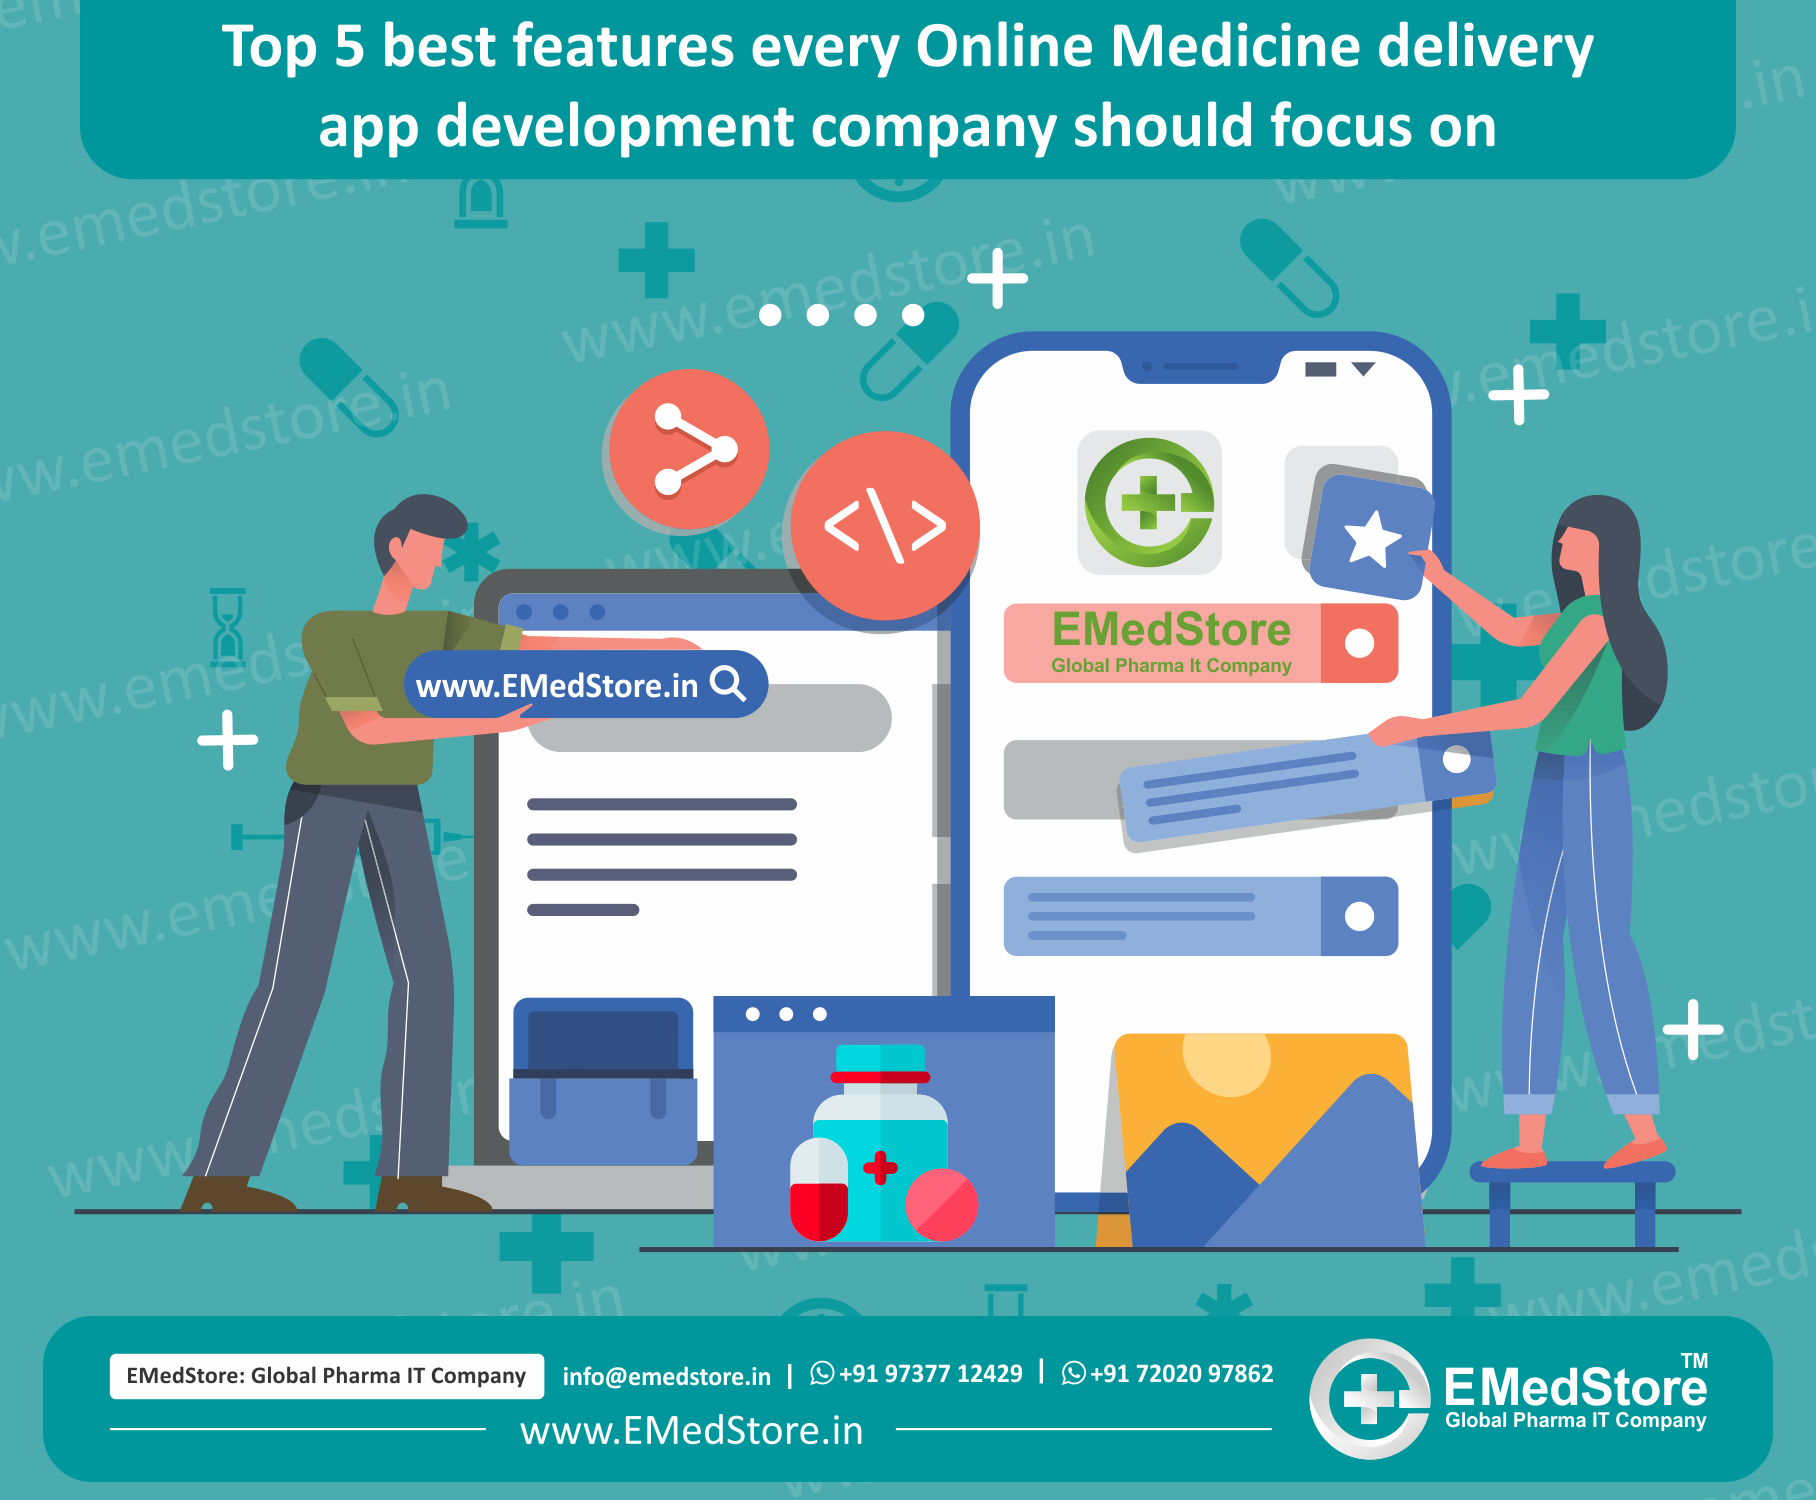 Top 5 best features every Online Medicine delivery app development company should focus on